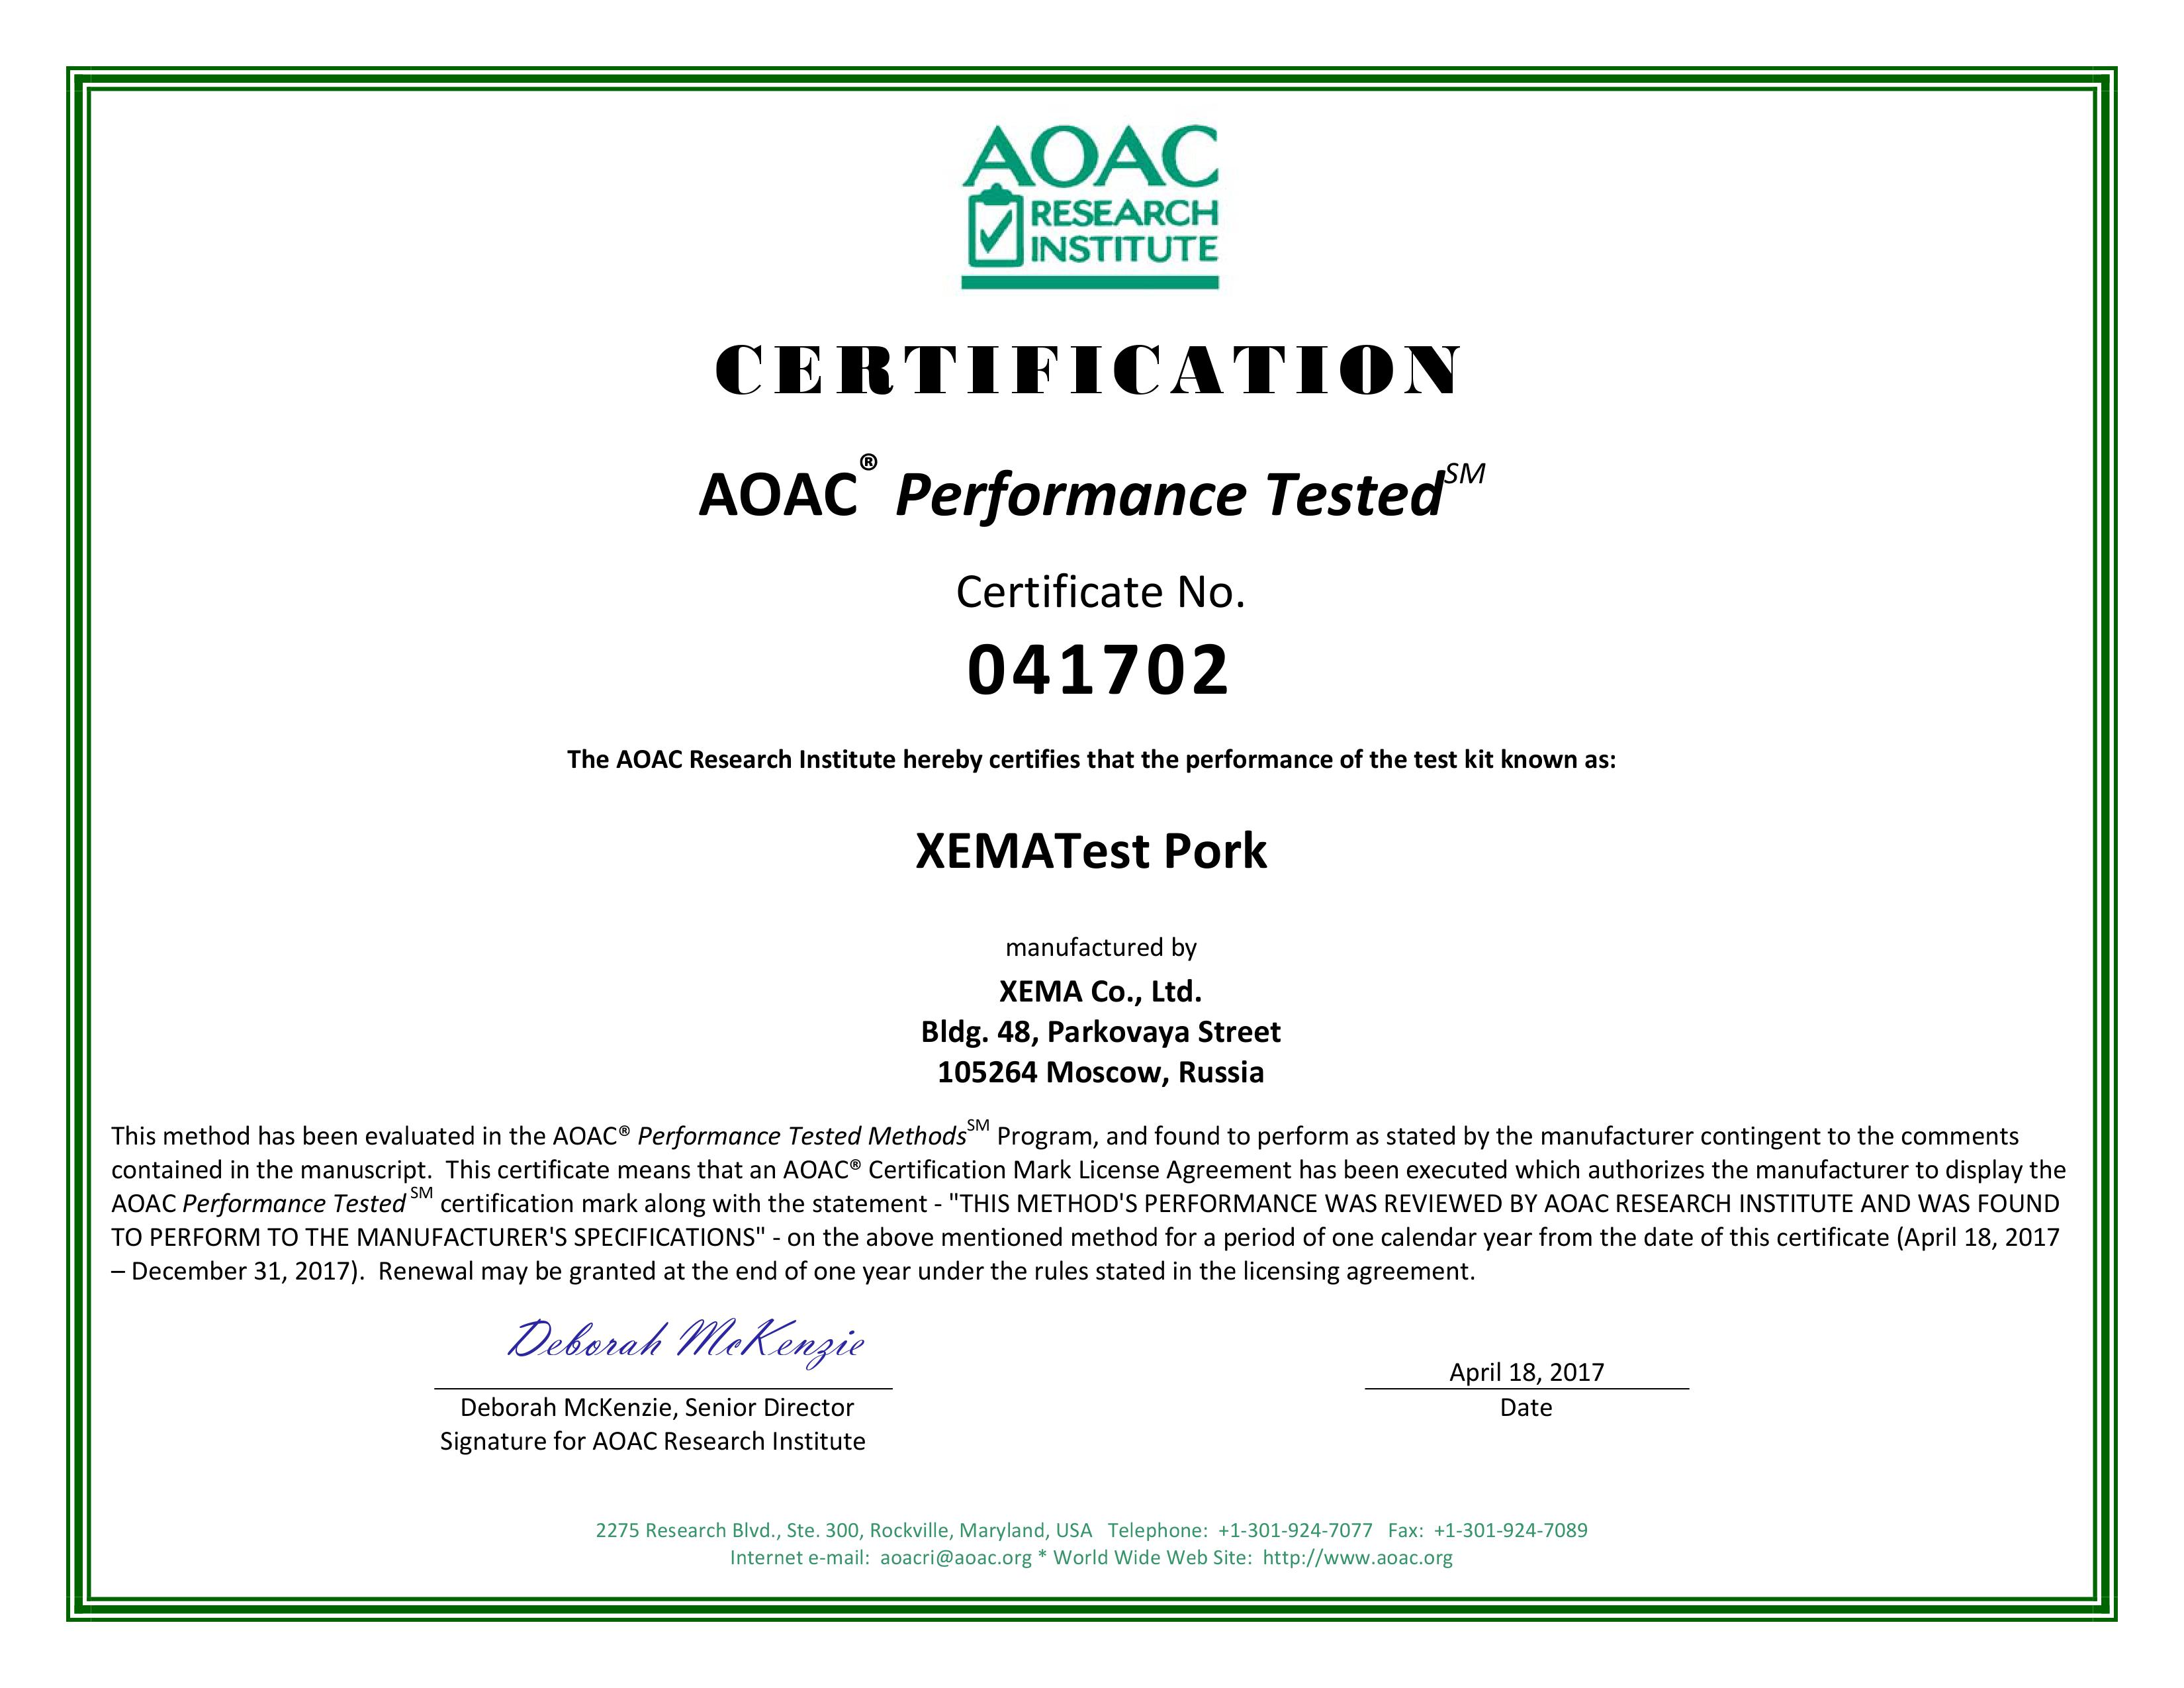 Xema medica co ltd xematest pork cat x366 has received aoac certificate nr 041702 xflitez Image collections